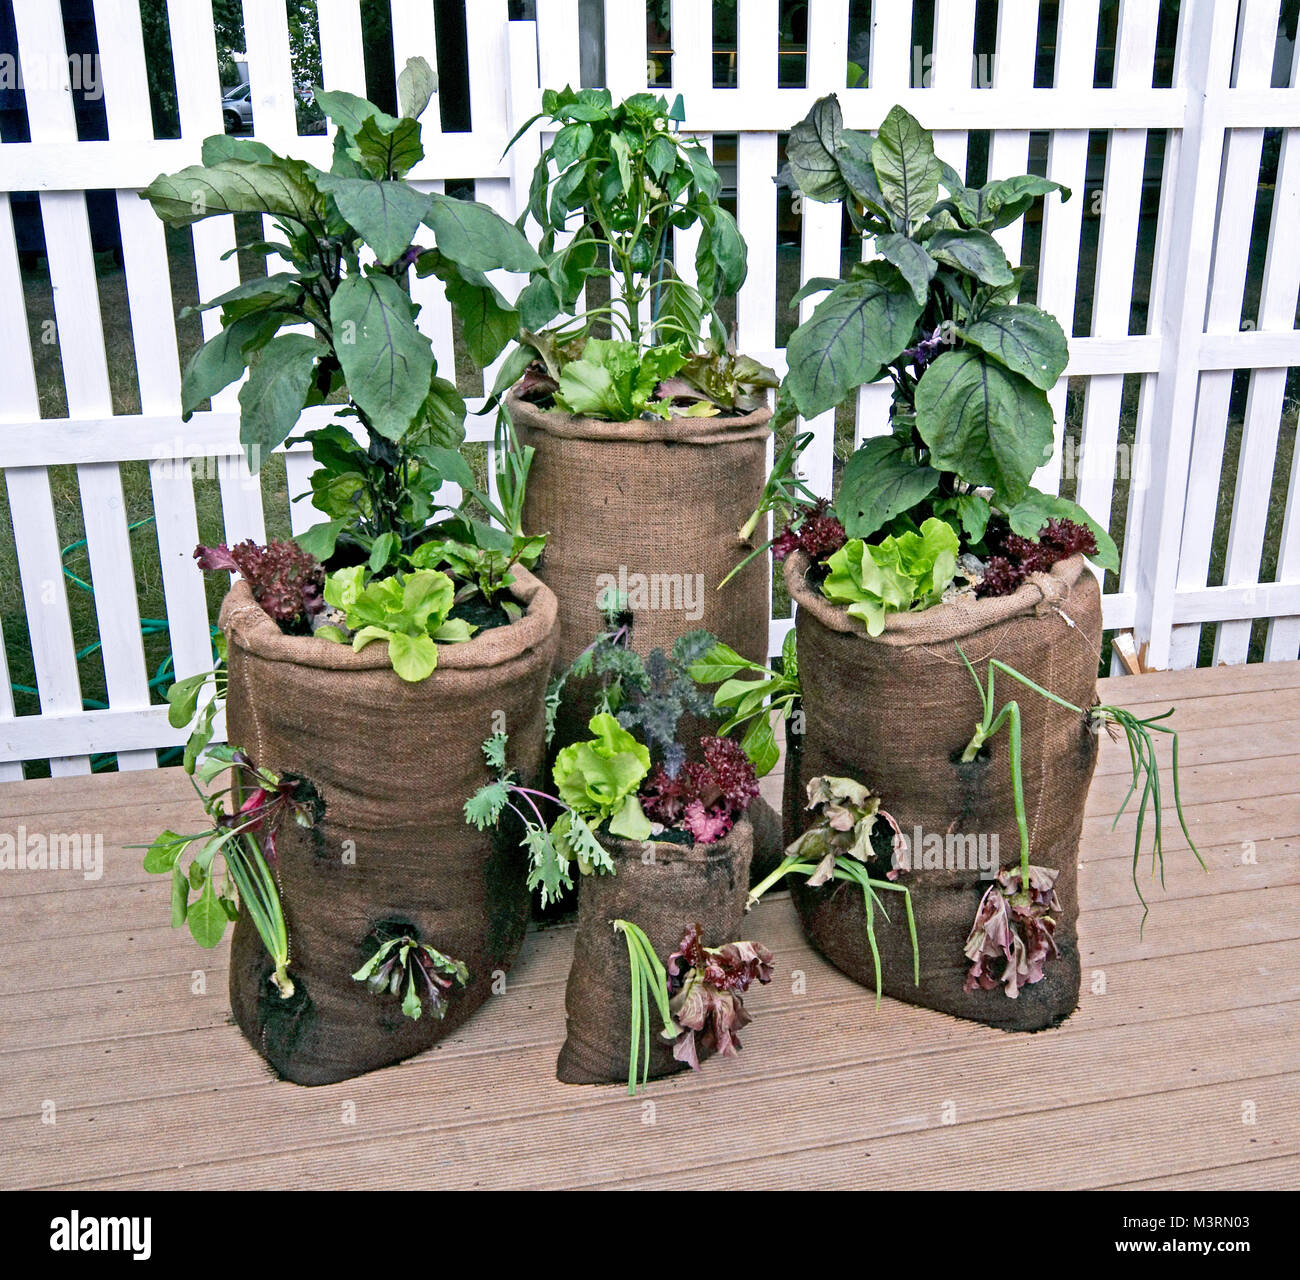 Concept gardening 'grow your own' and save the enviornment vegetables grown in sacks Stock Photo